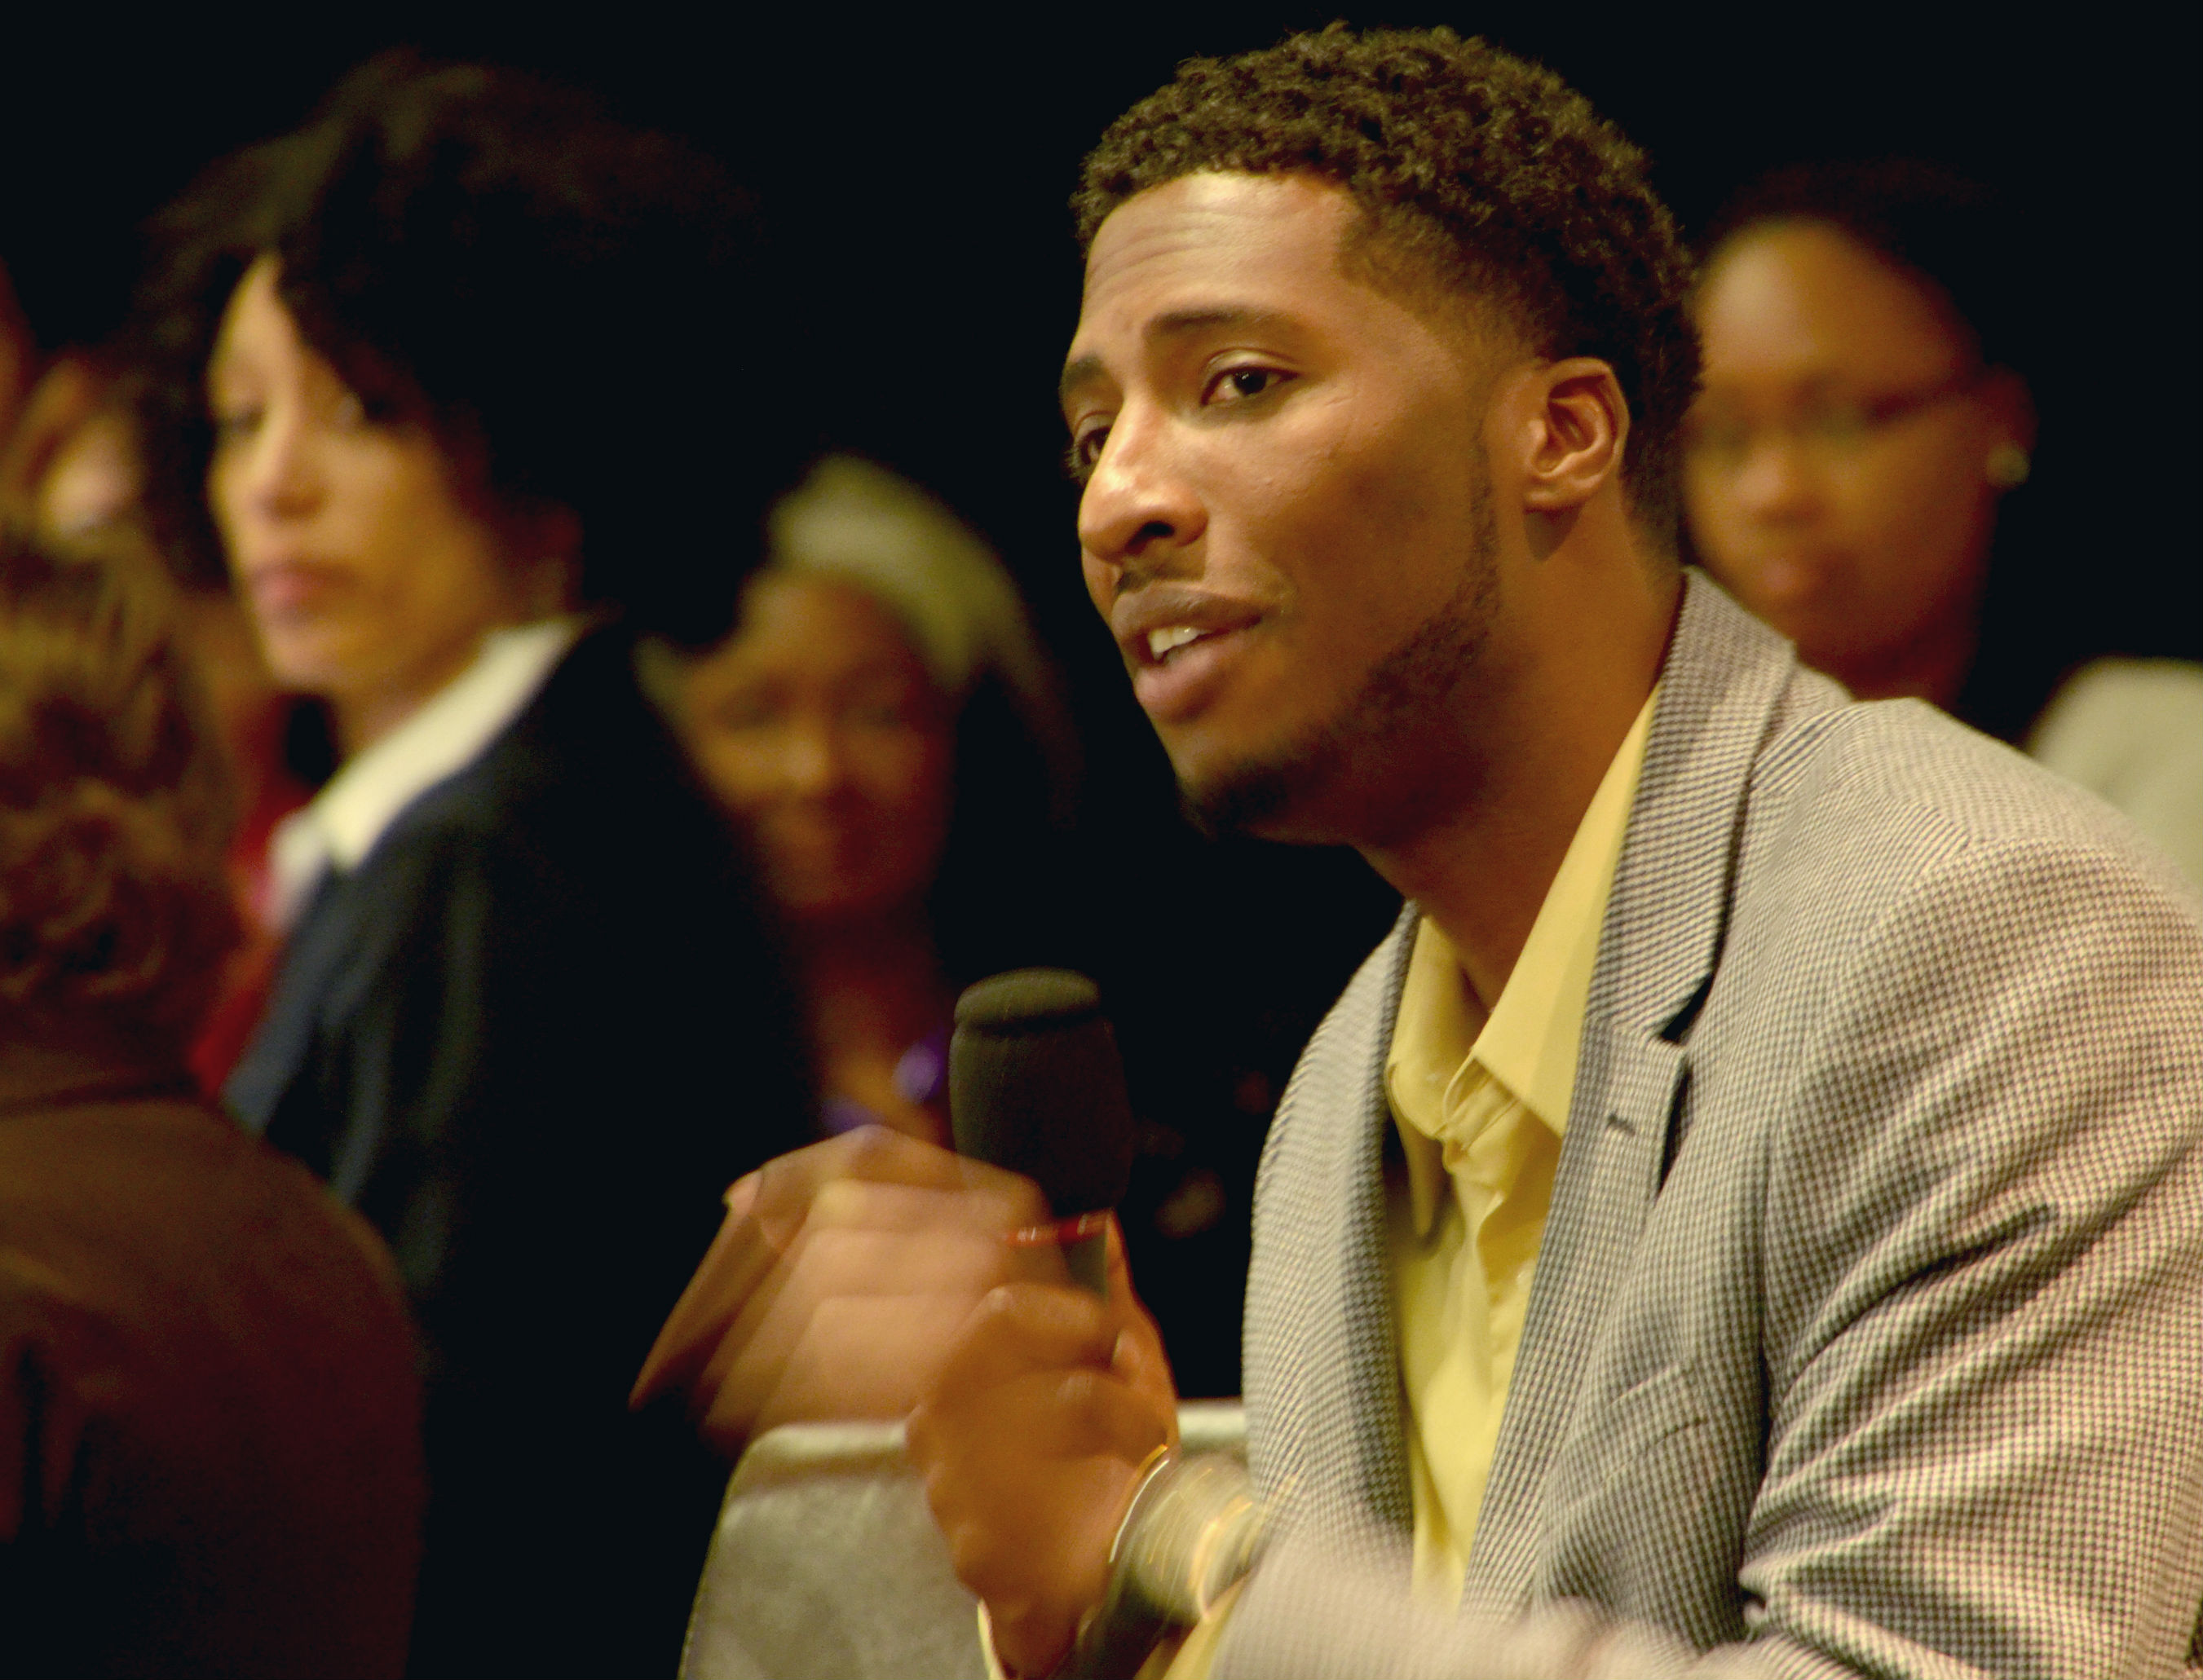 Pastor Anthony Grimes